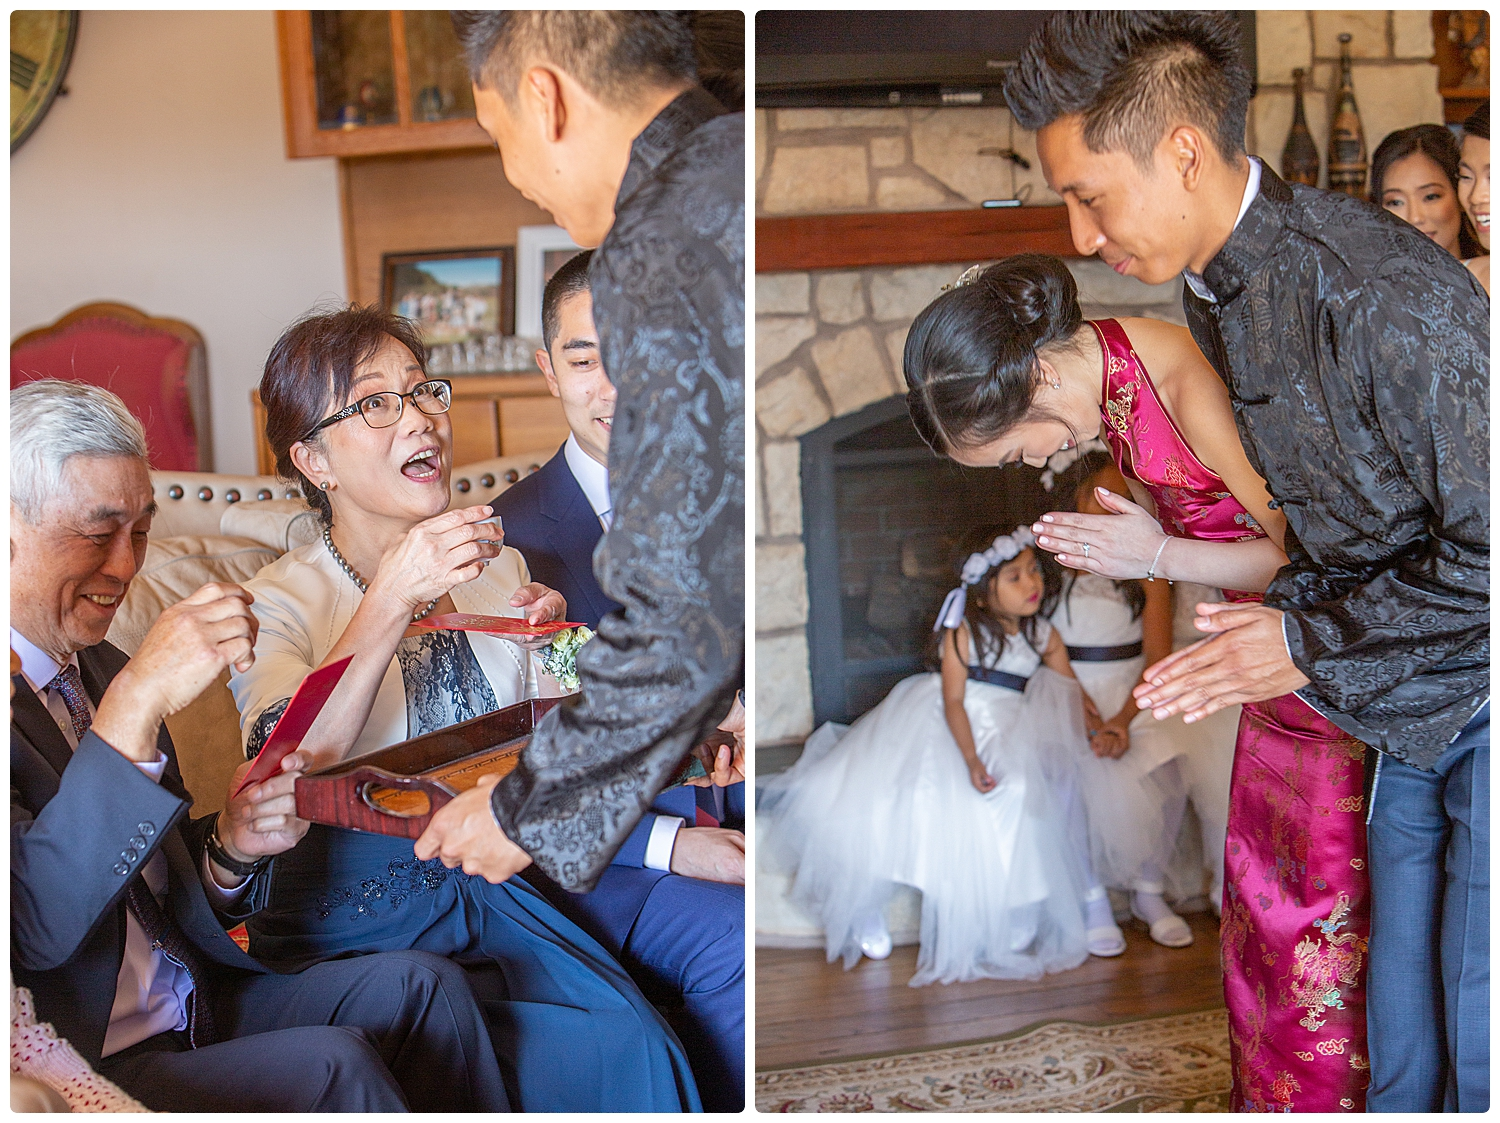 Megan+Froi wedding 050419_Renoda Campbell Photography-65.jpg